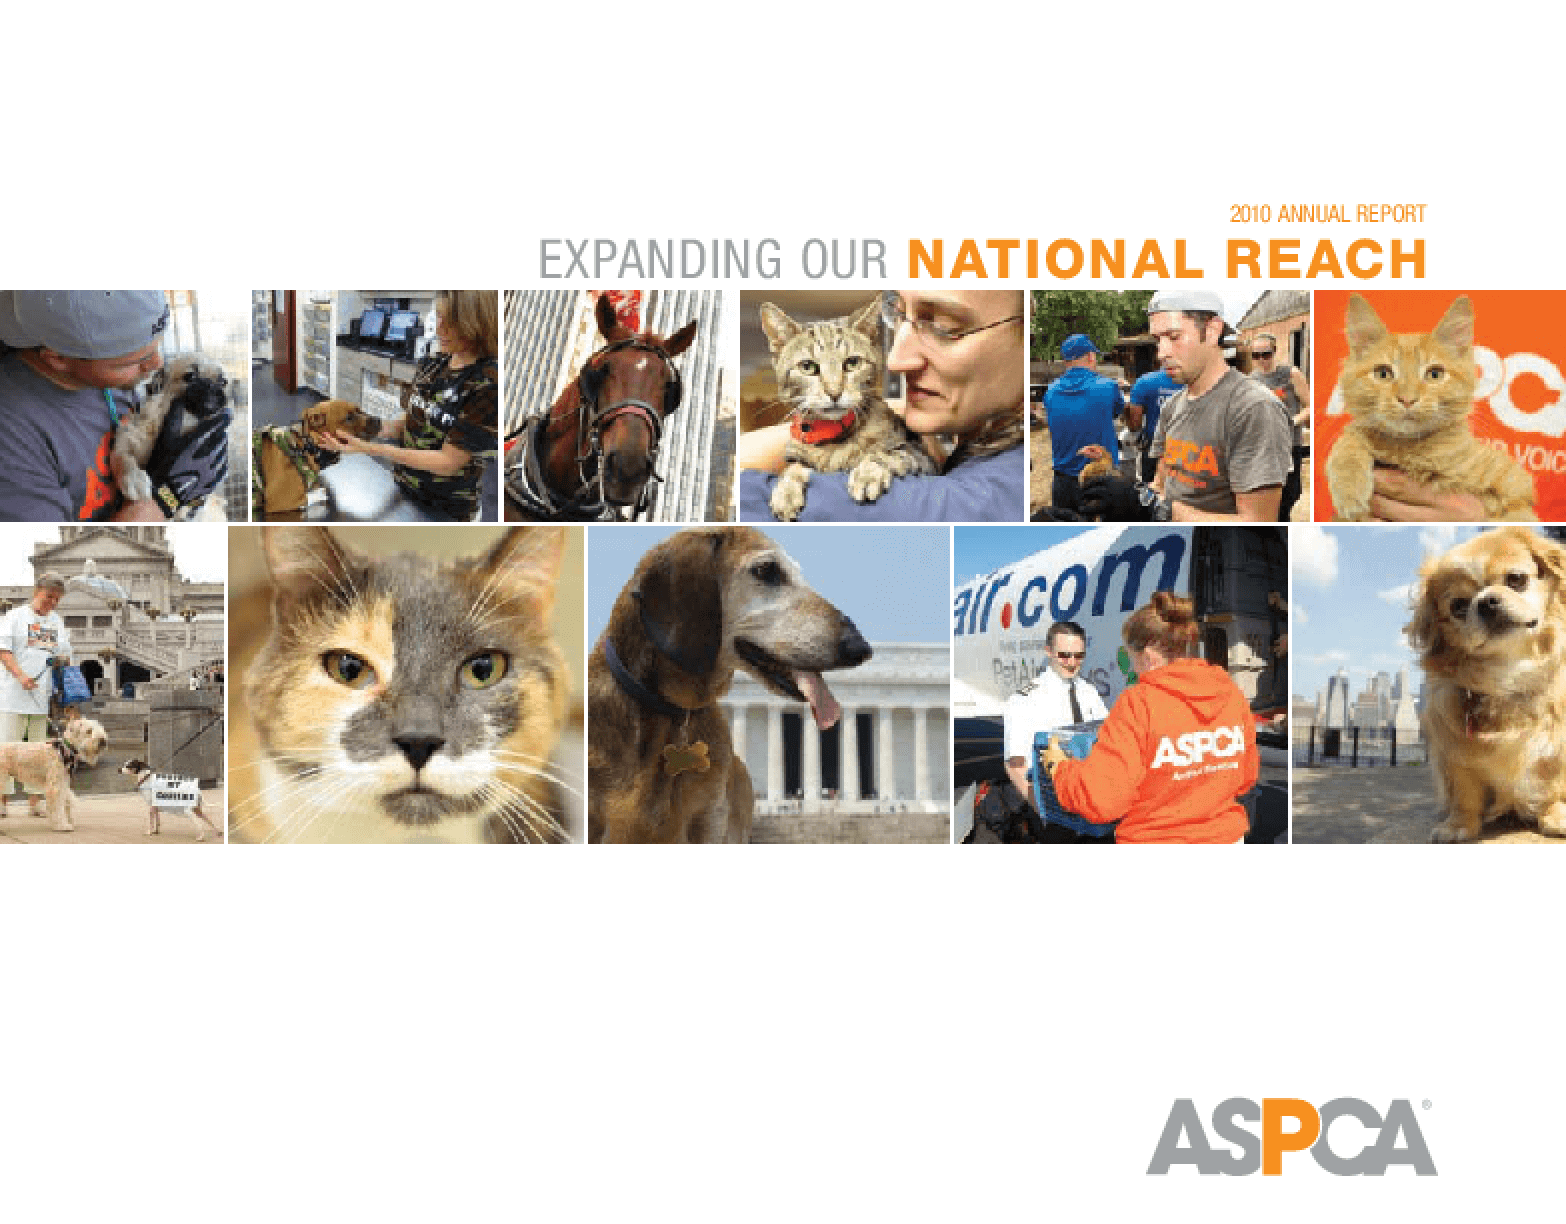 Expanding Our National Reach: The ASPCA's 2010 Annual Report